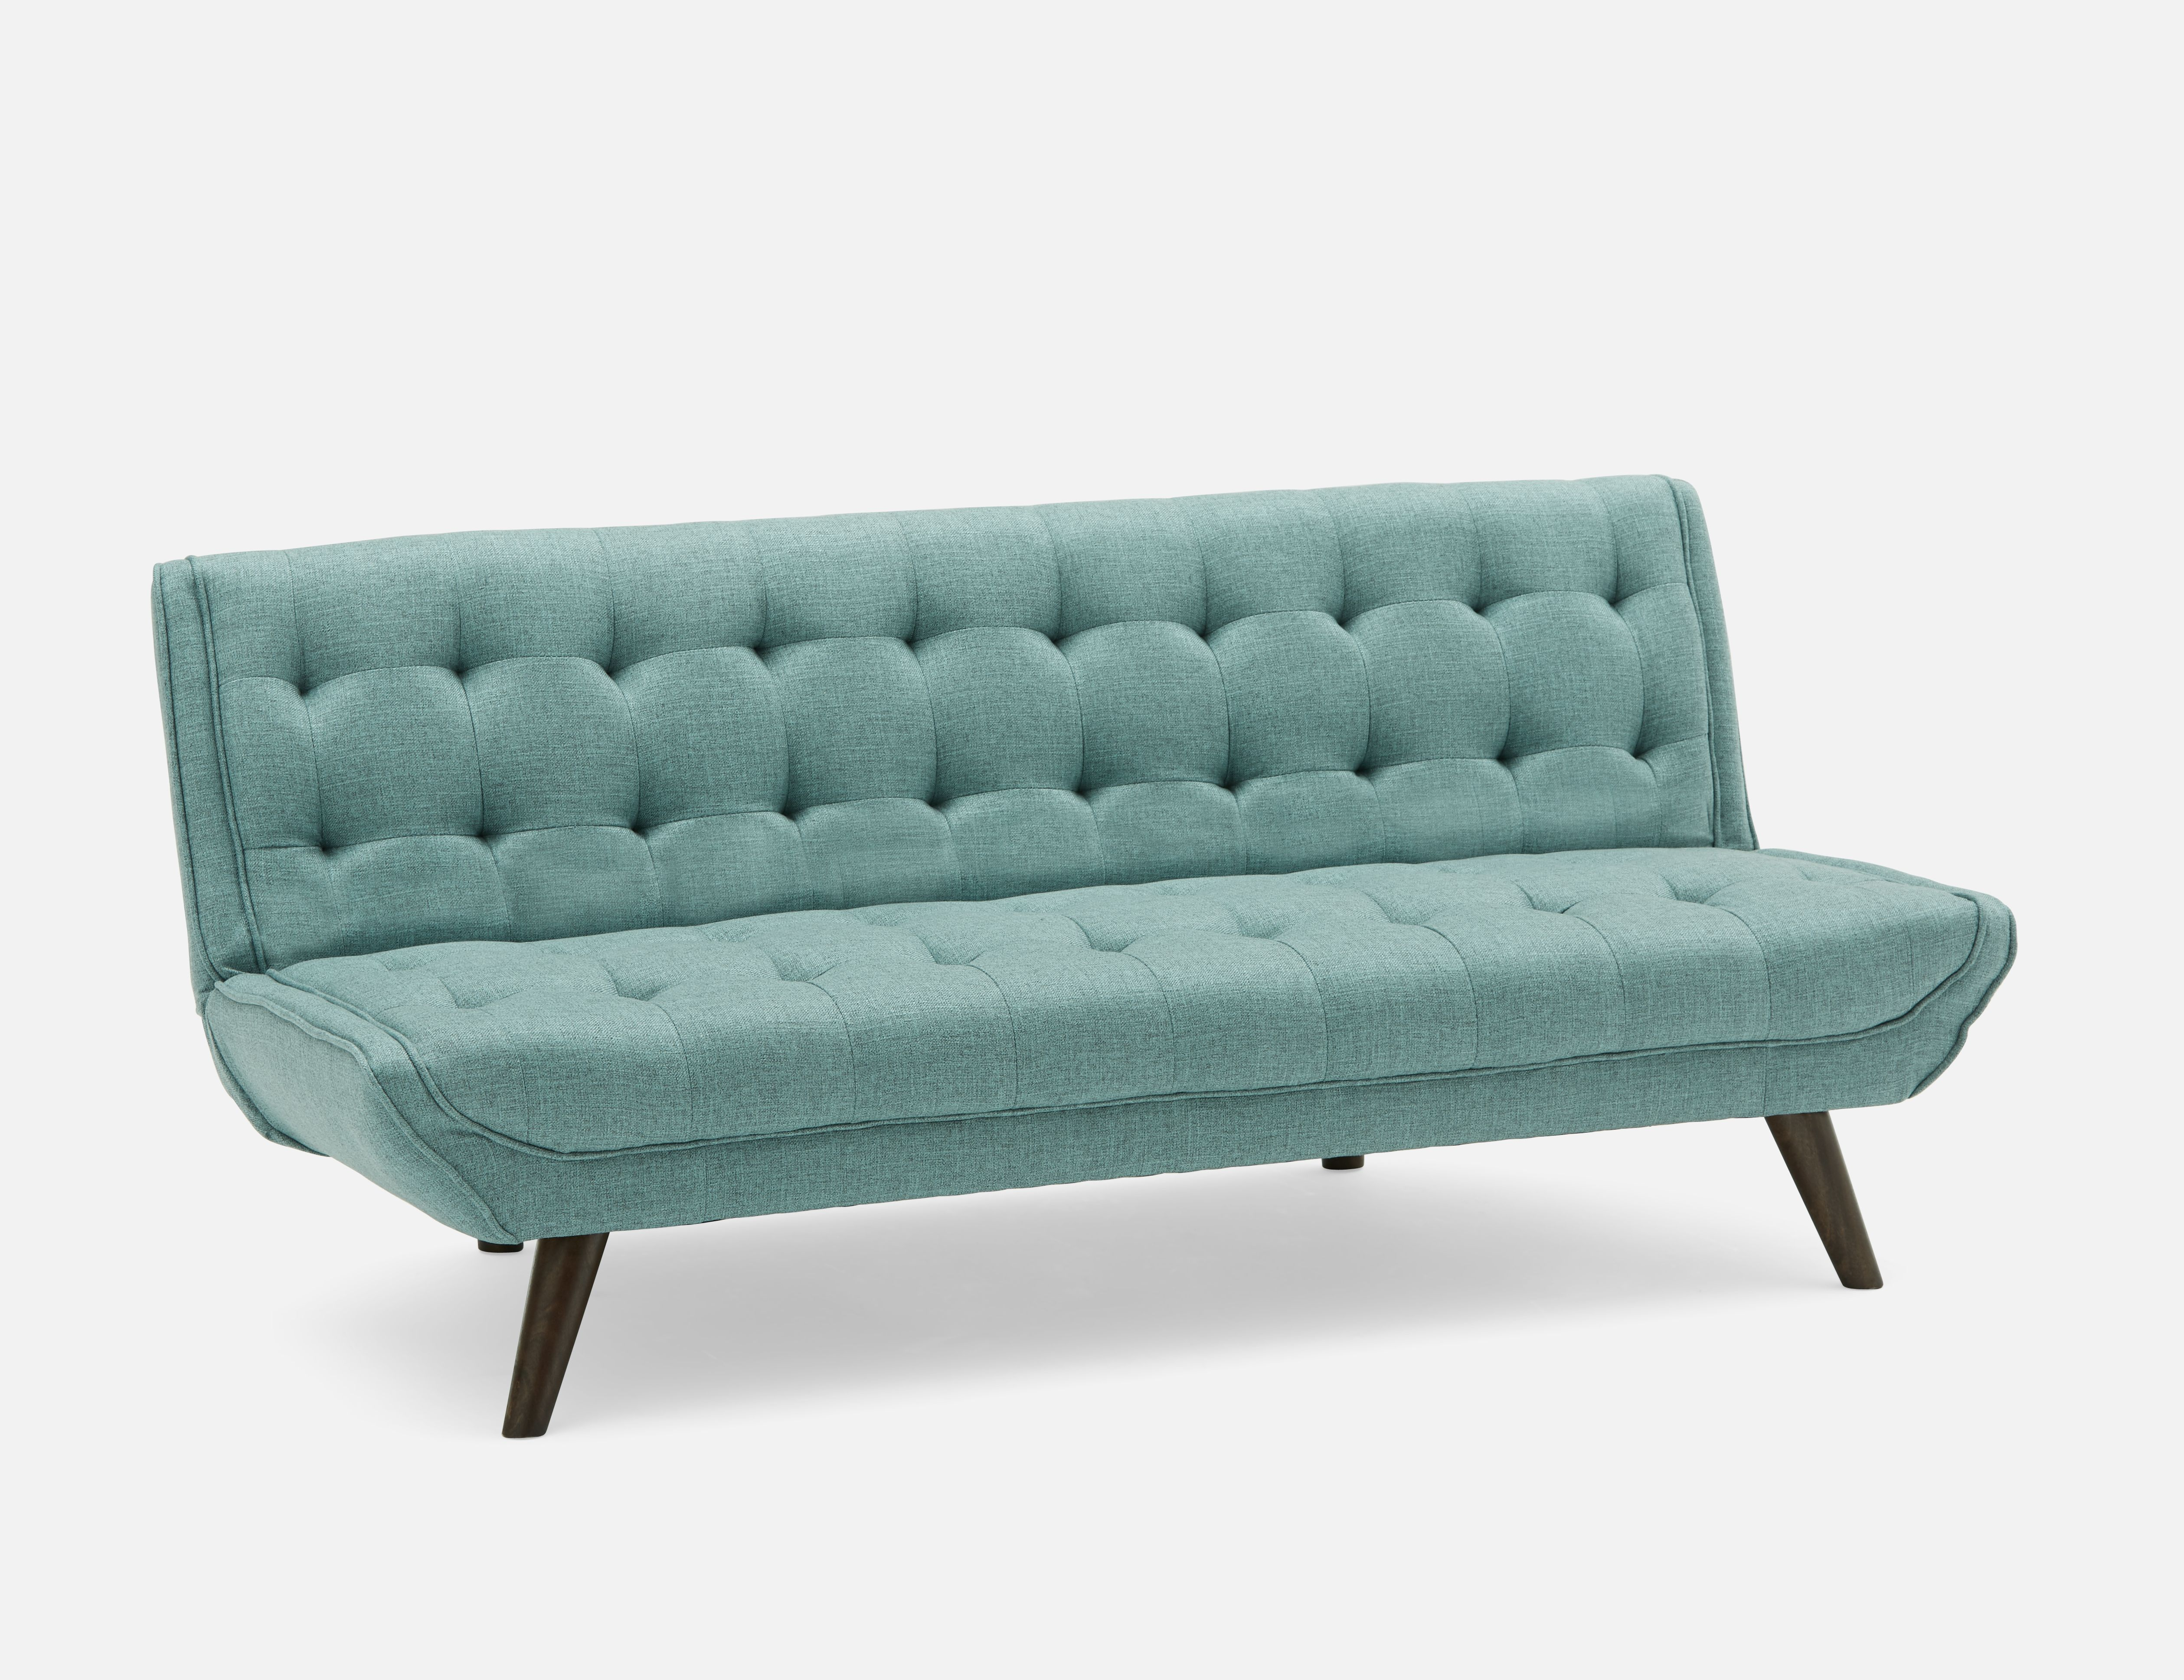 Flip Sofabed Sofas Sleepers Gus Modern Sofa Bed With Storage Single Sofa Bed Contemporary Sofa Bed